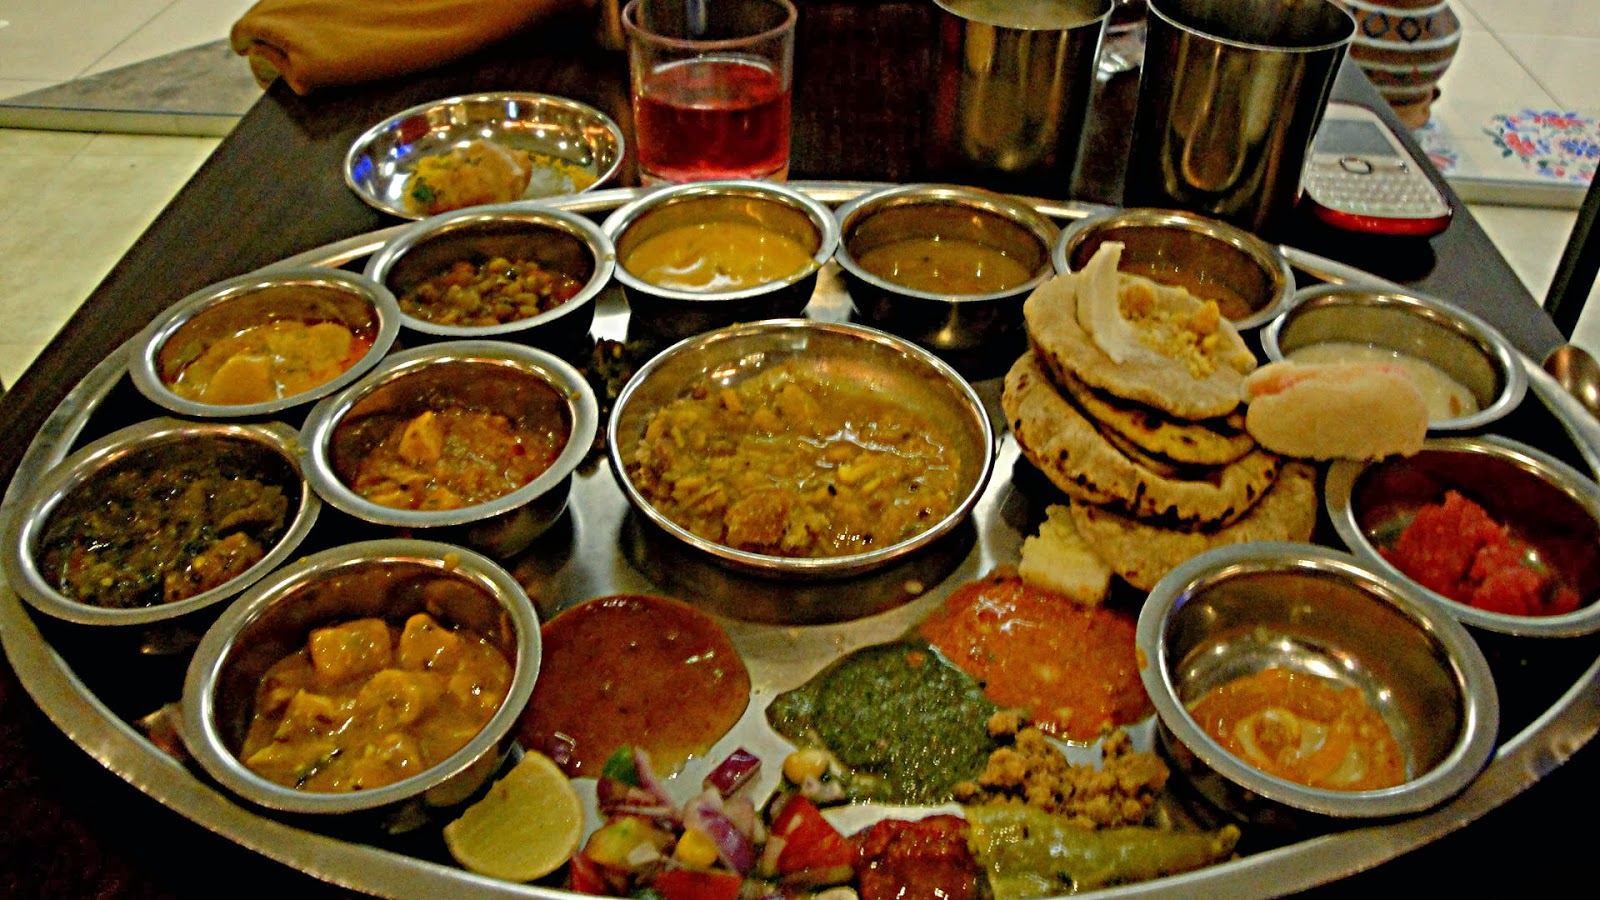 Cuisines Luxembourg A Tour To Discover The Soulful Delicacies And Cuisine Of India